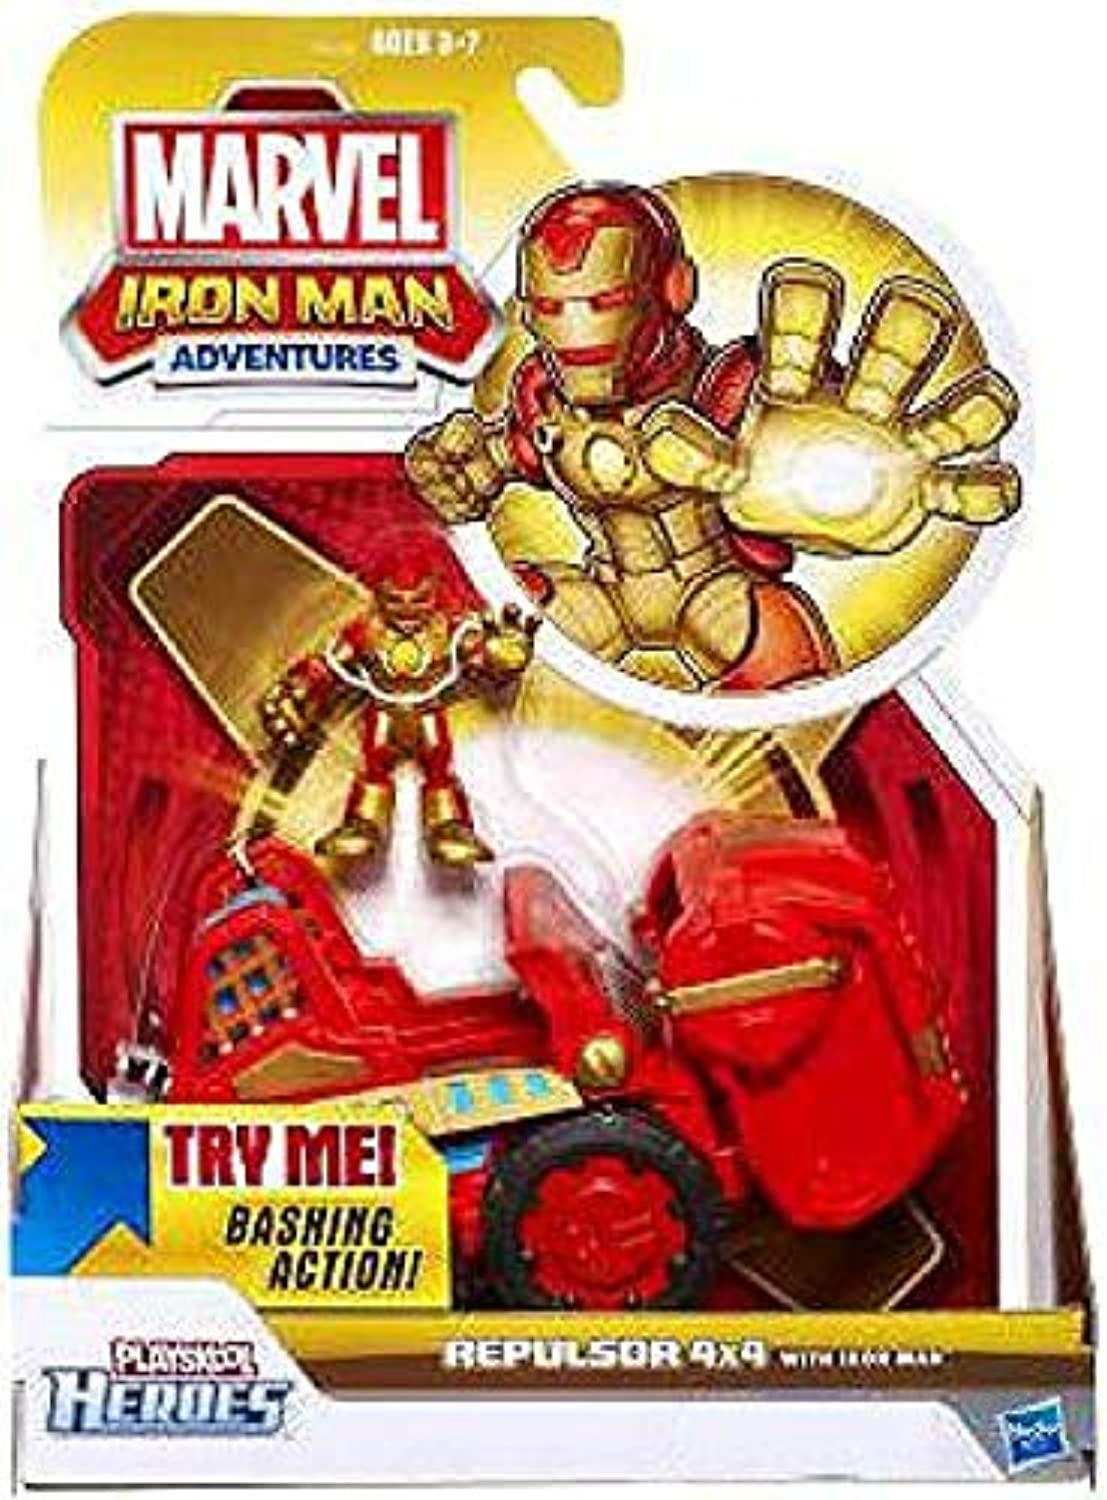 Marvel Playskool Heroes Iron Man Adventures Exclusive Playset Repulsor 4x4 [with Iron Man Figure] by Playskool